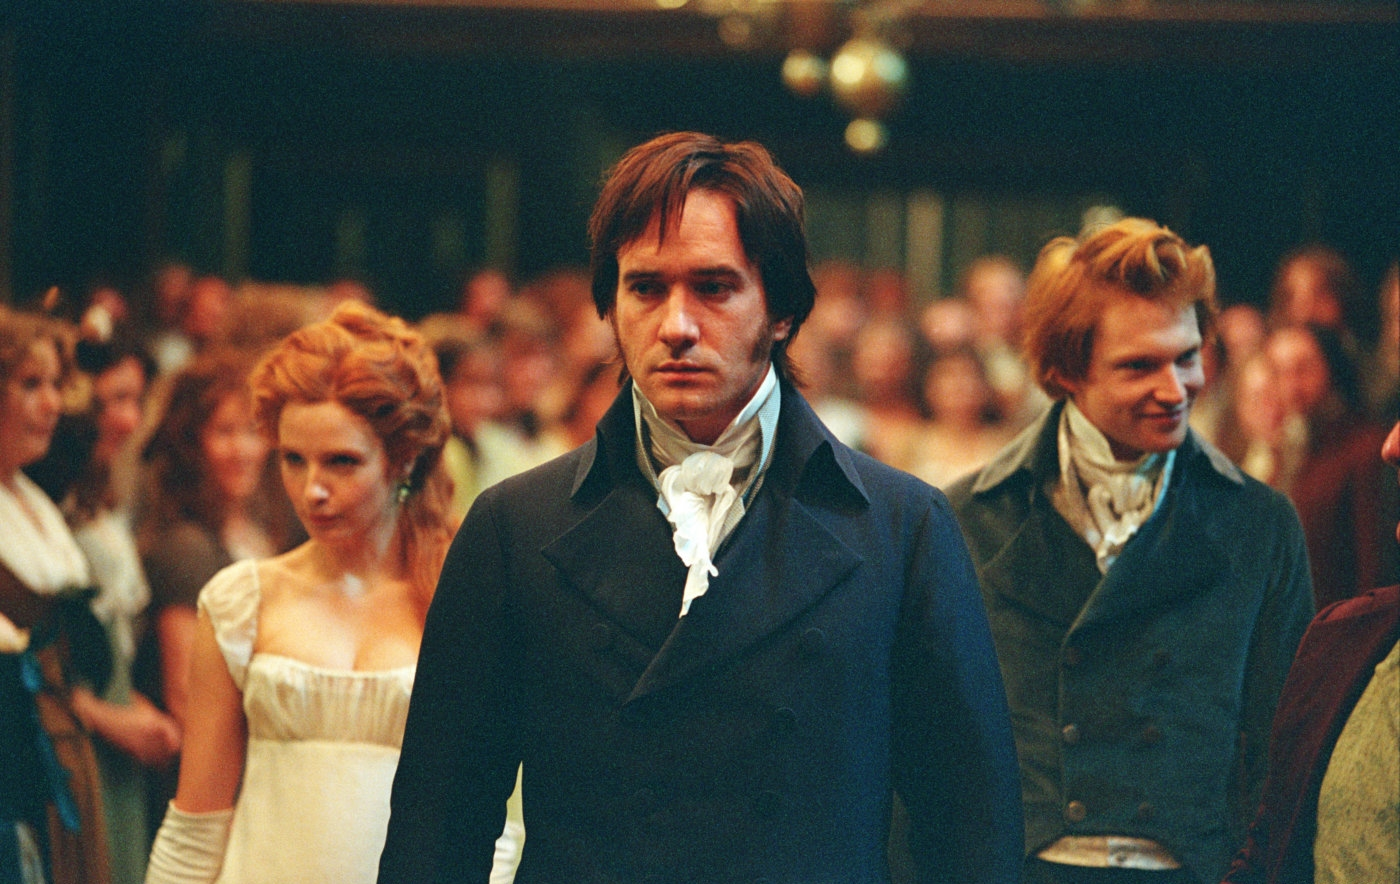 jane austens methods of portraying the character of mr. darcy in pride and prejudice essay Though undoubtedly a comic character, mr collins reflects com/pride-and-prejudice/study-guide/essay full text of pride and prejudice by jane austen.